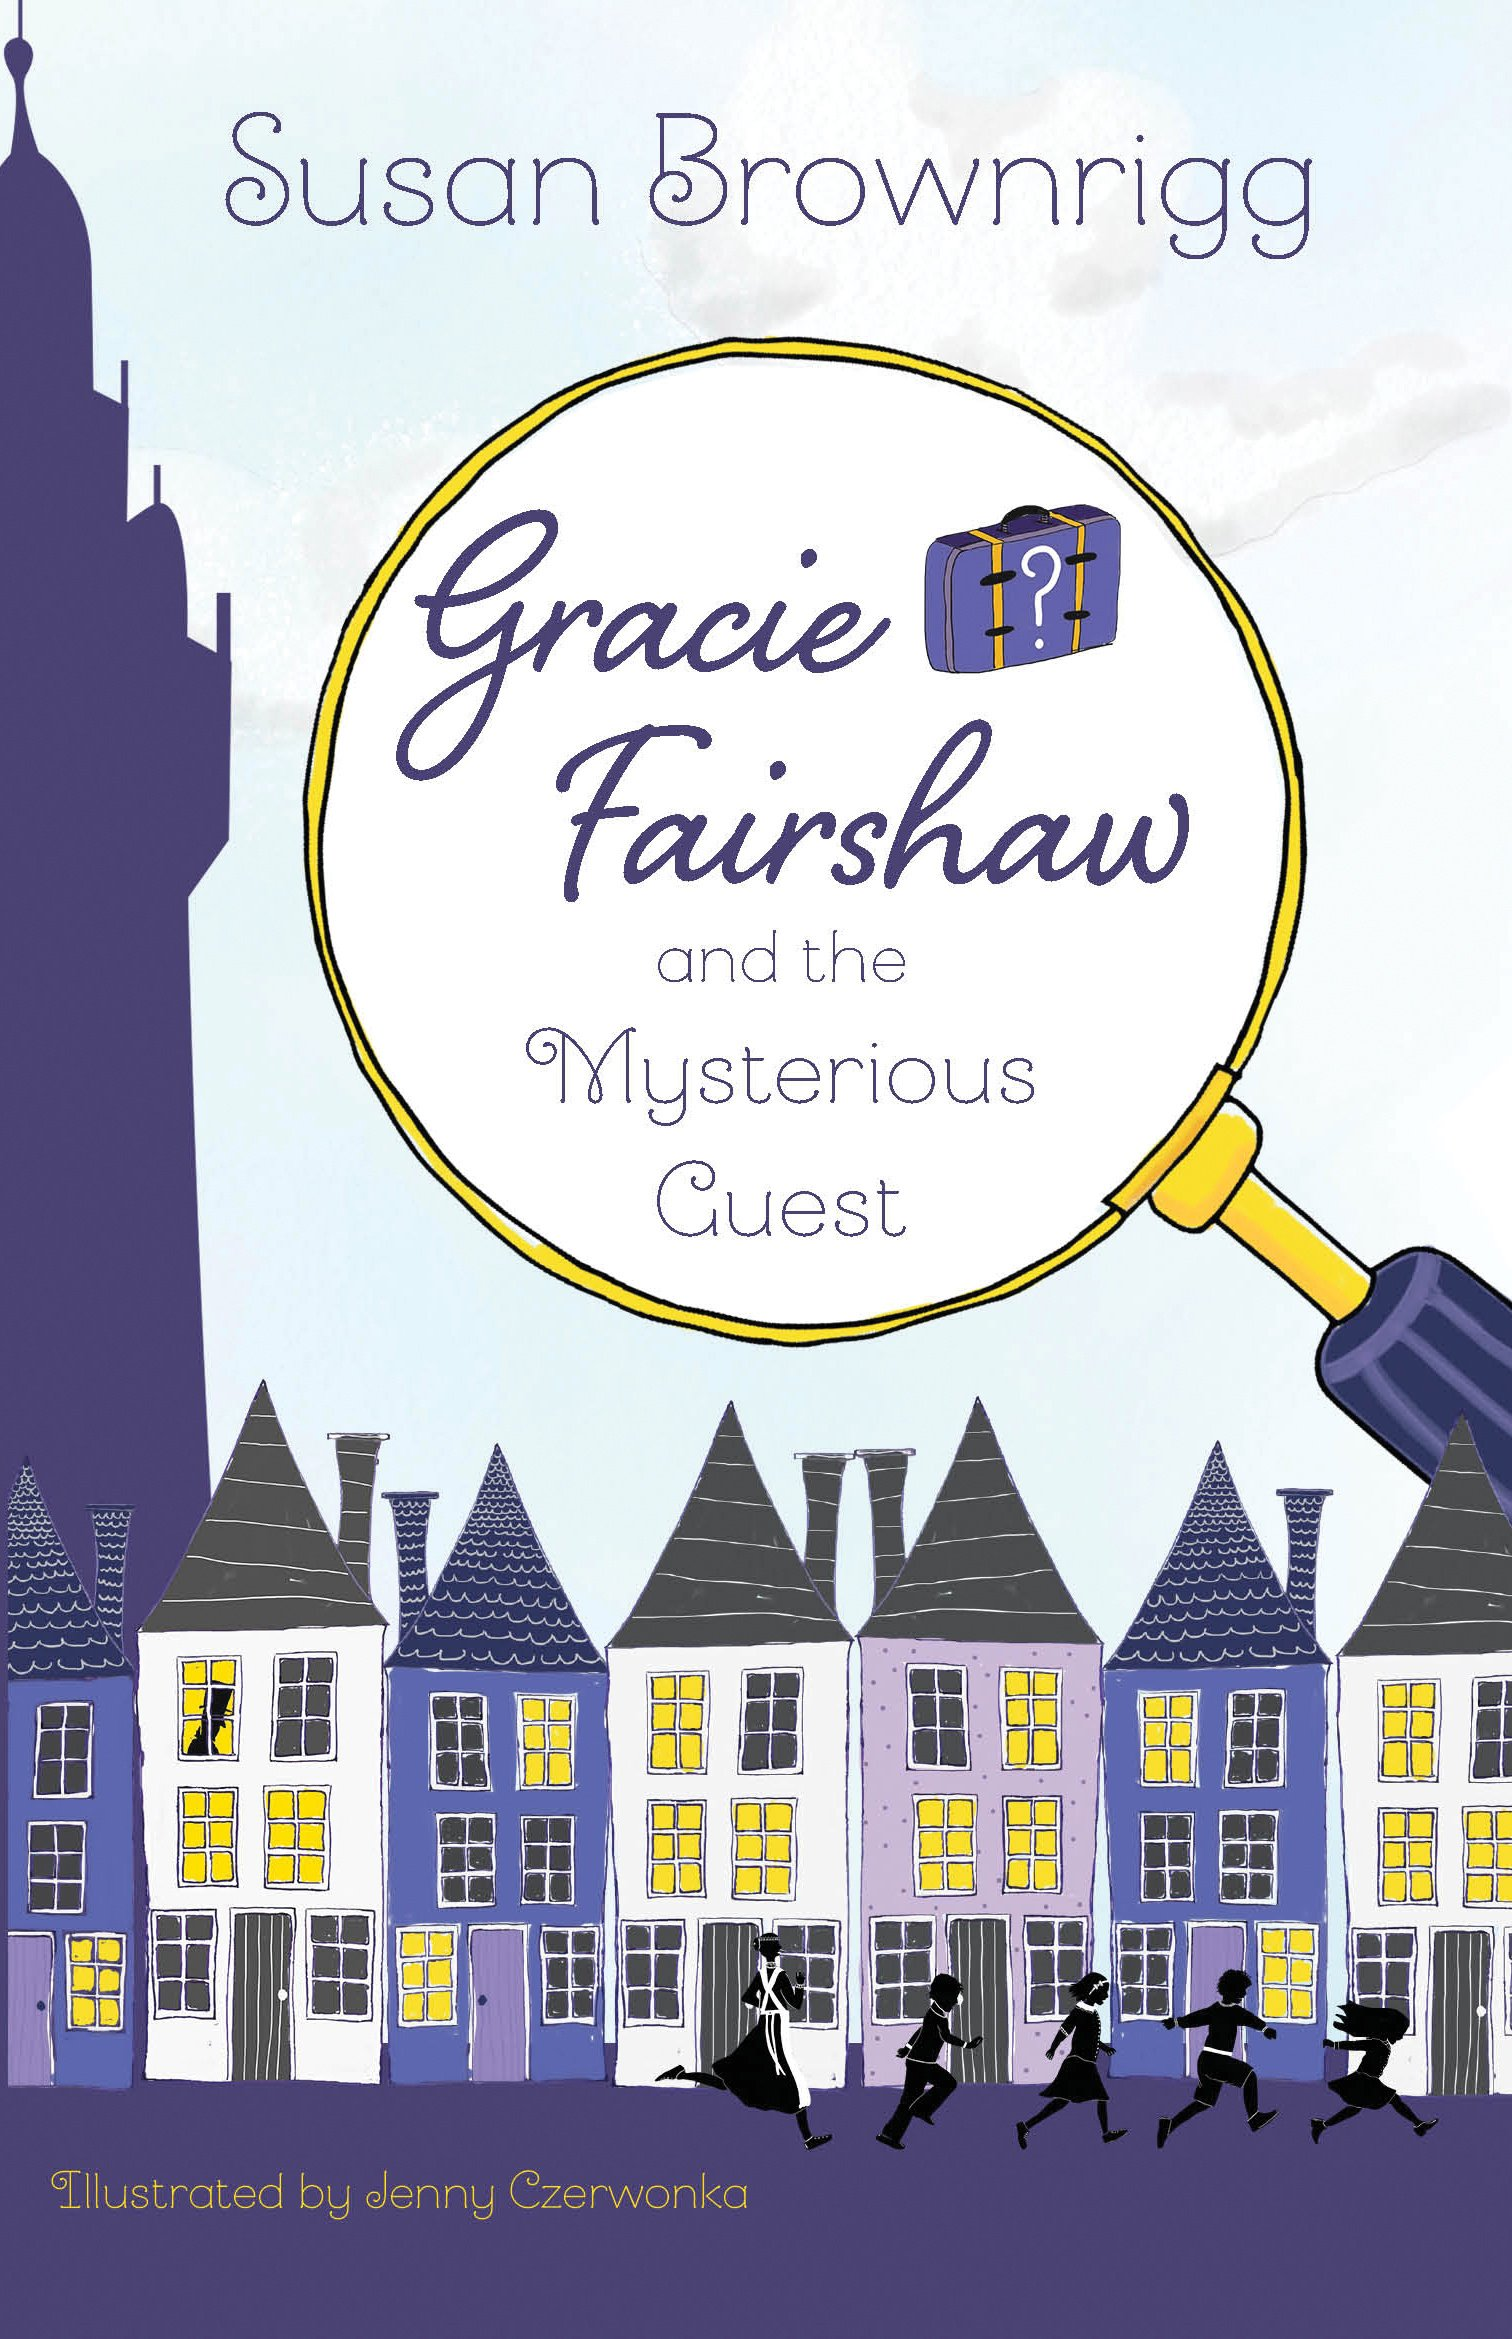 https://0201.nccdn.net/1_2/000/000/17f/0a7/cover-reveal-Gracie-Fairshaw-and-the-Mysterious-Guest-1512x2339.jpg